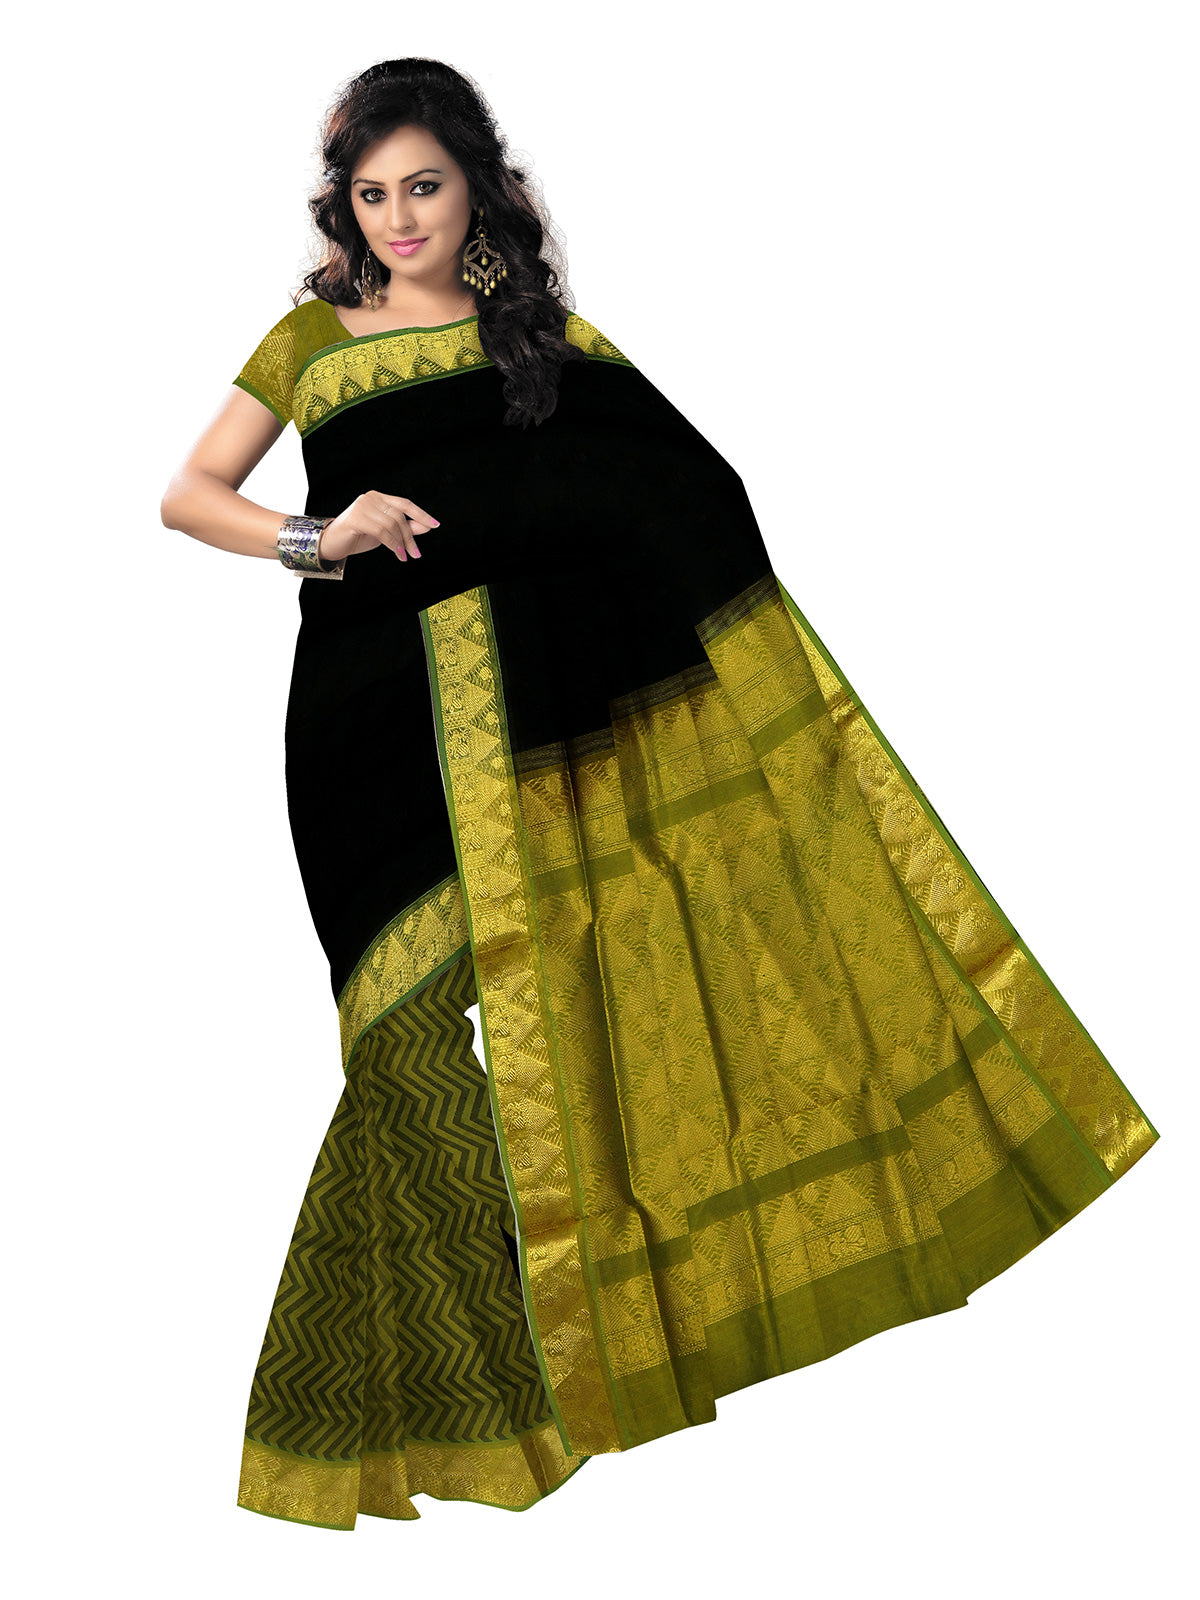 Silk Cotton Saree - Black and Mehandi Green with Temple zari border partly